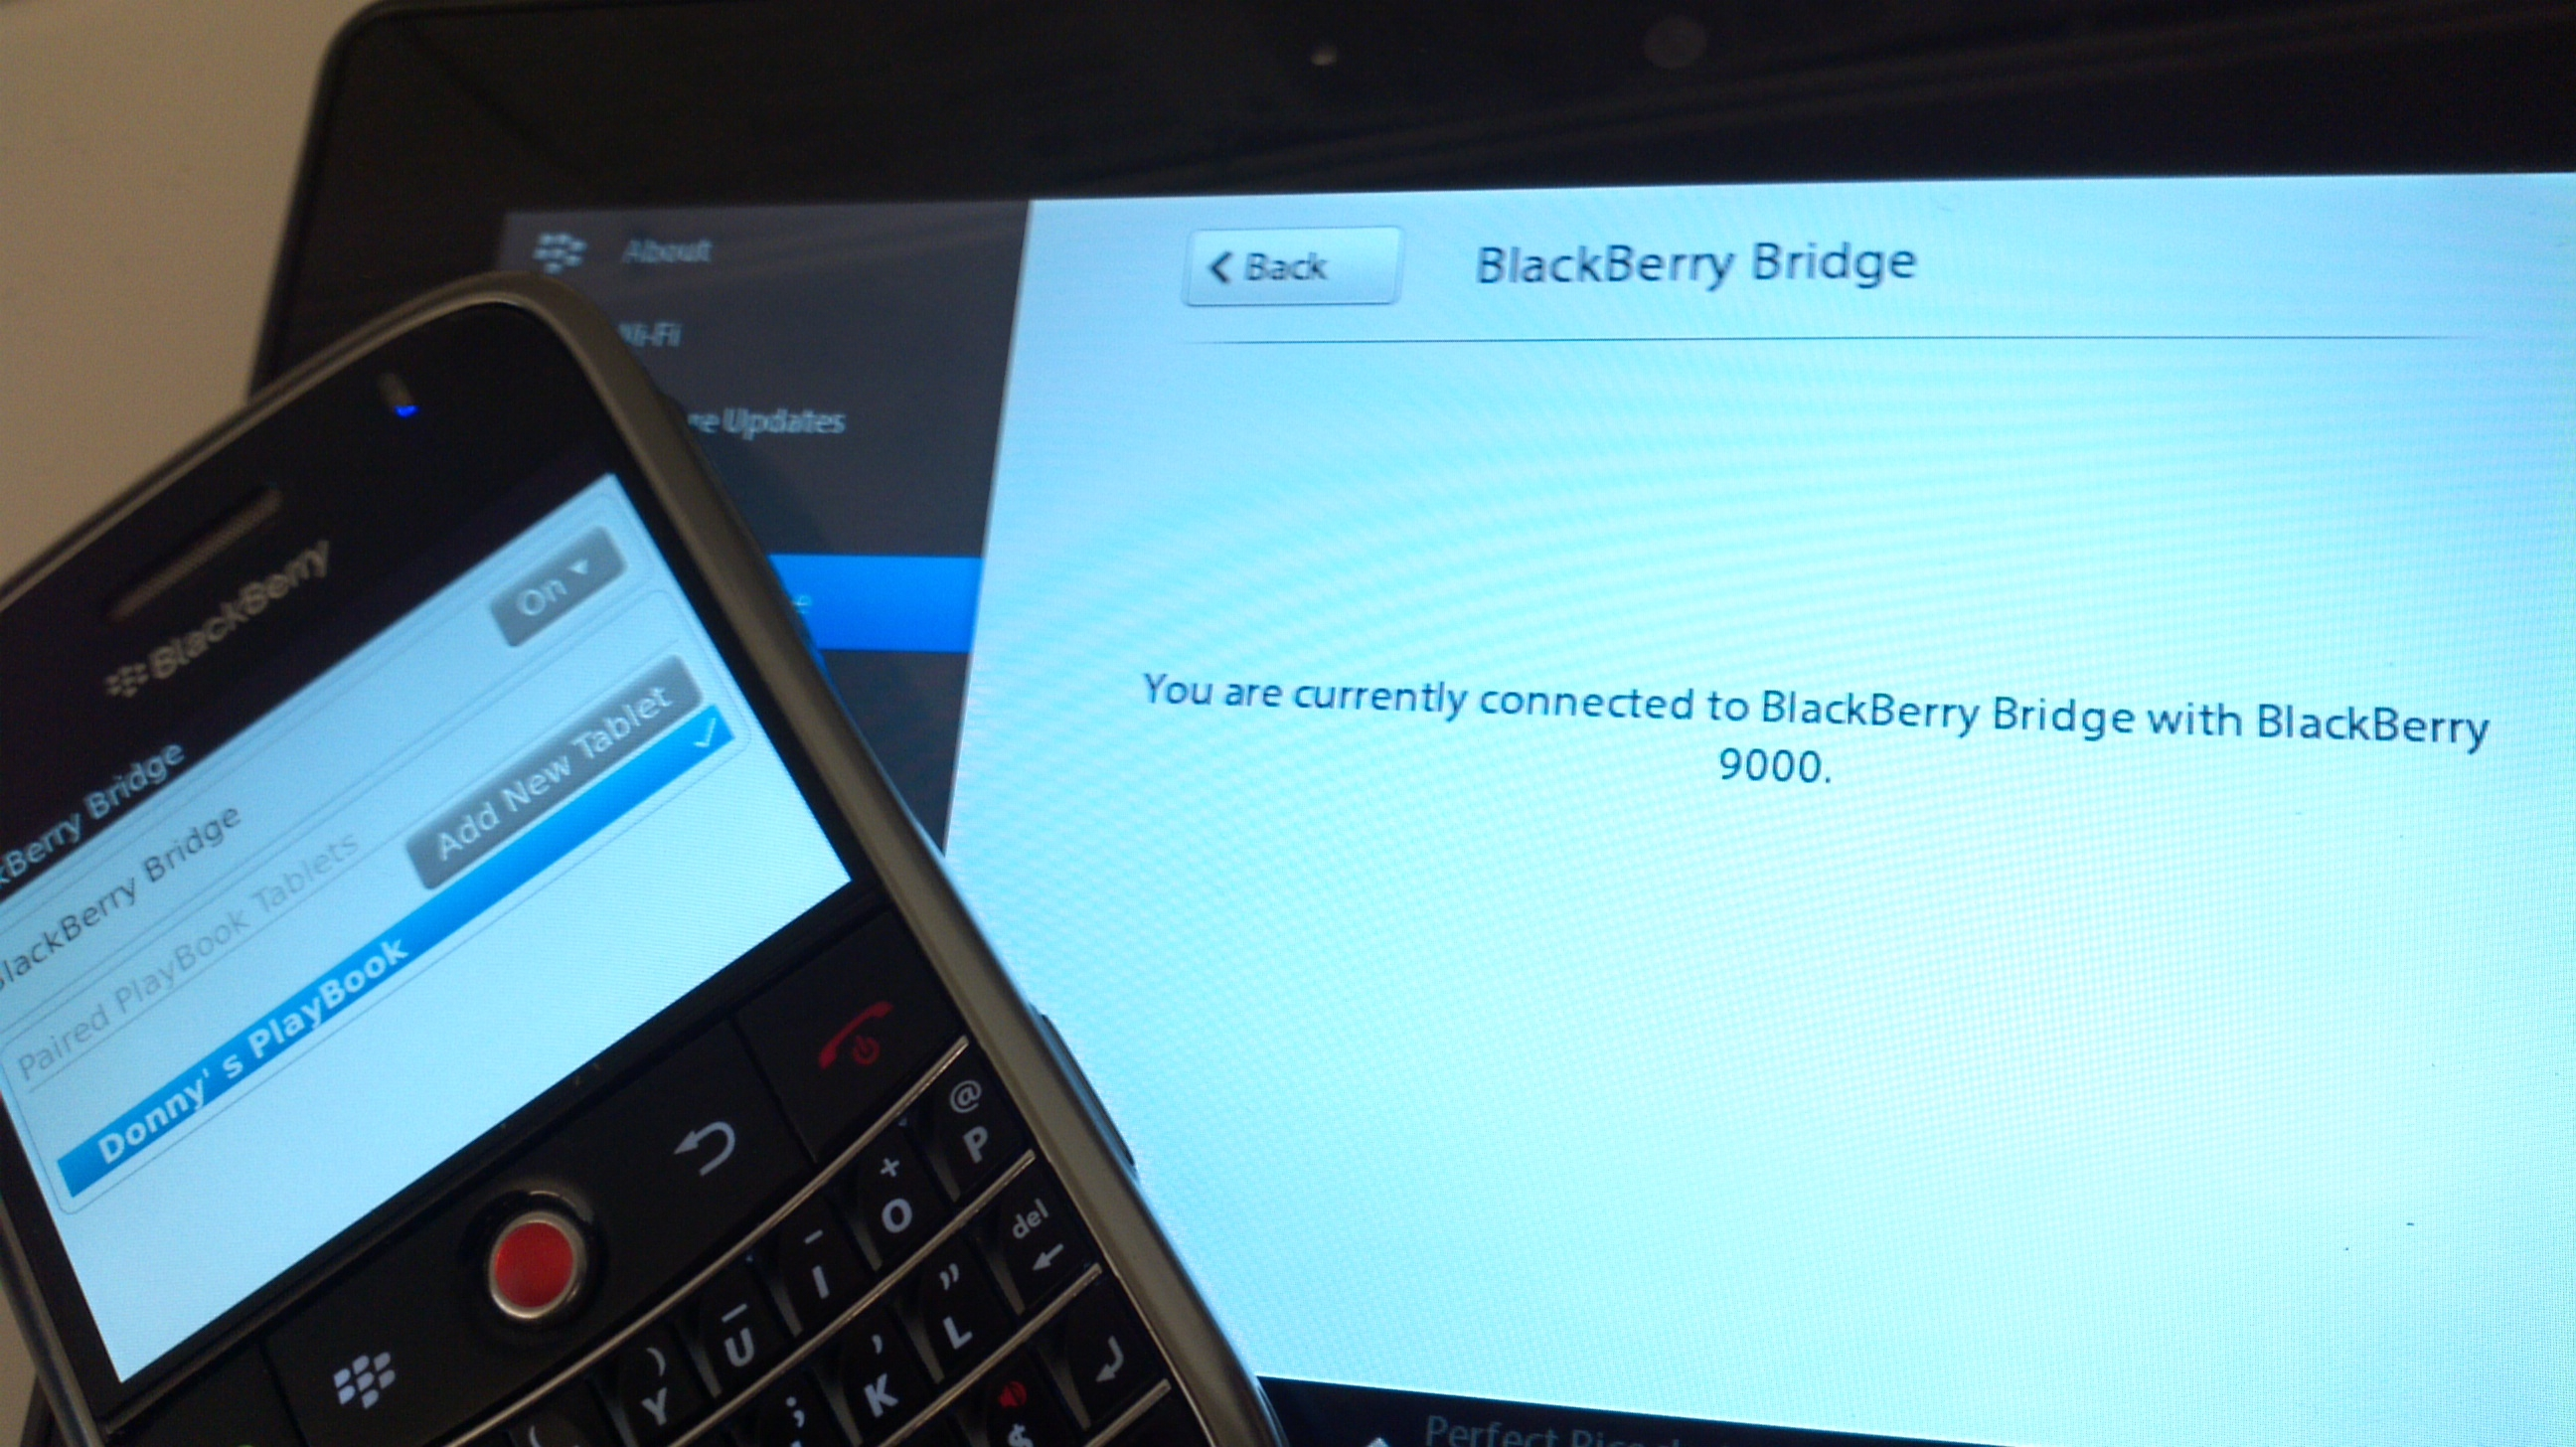 Blackberry Playbook and Blackberry Bridge feature